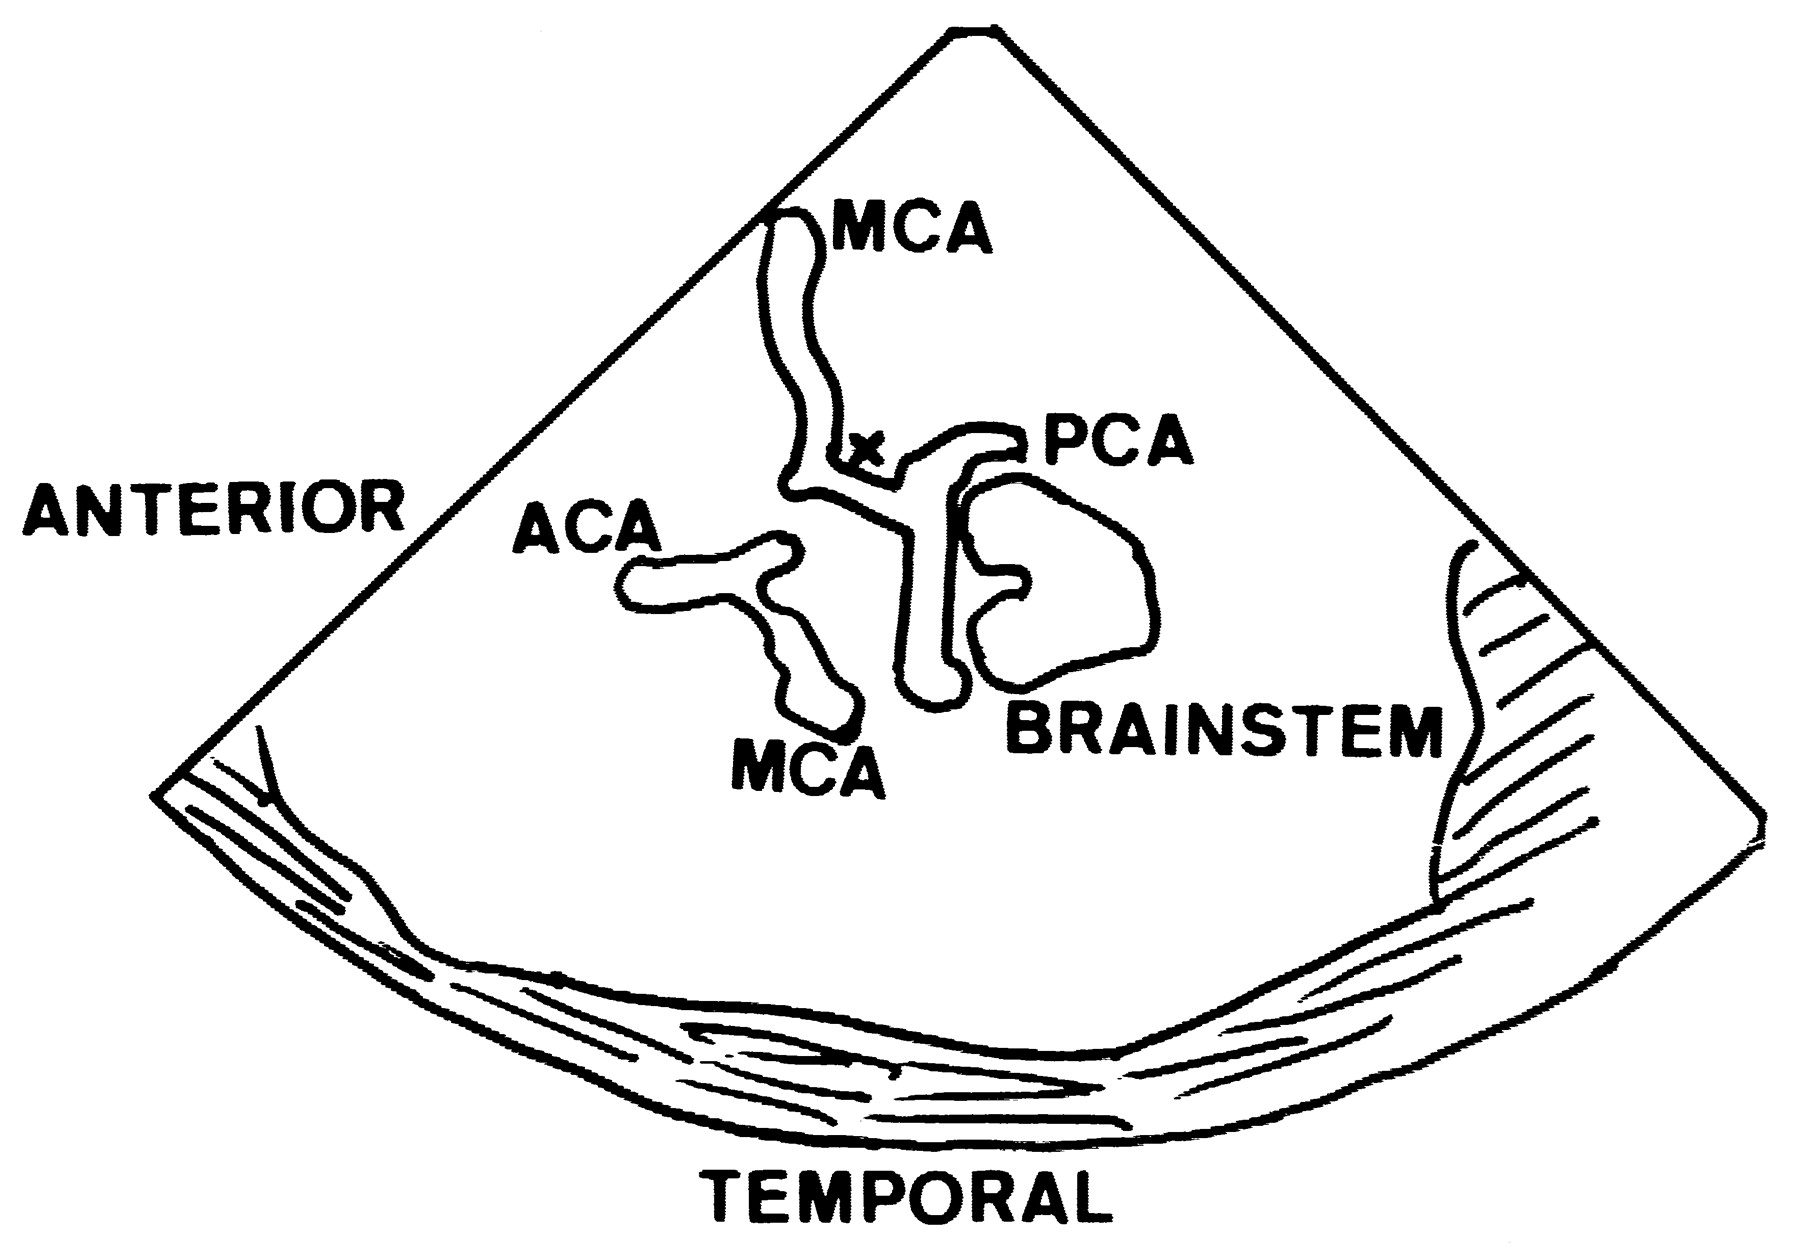 1800x1250 Assessment Of The Posterior Communicating Artery By Transcranial